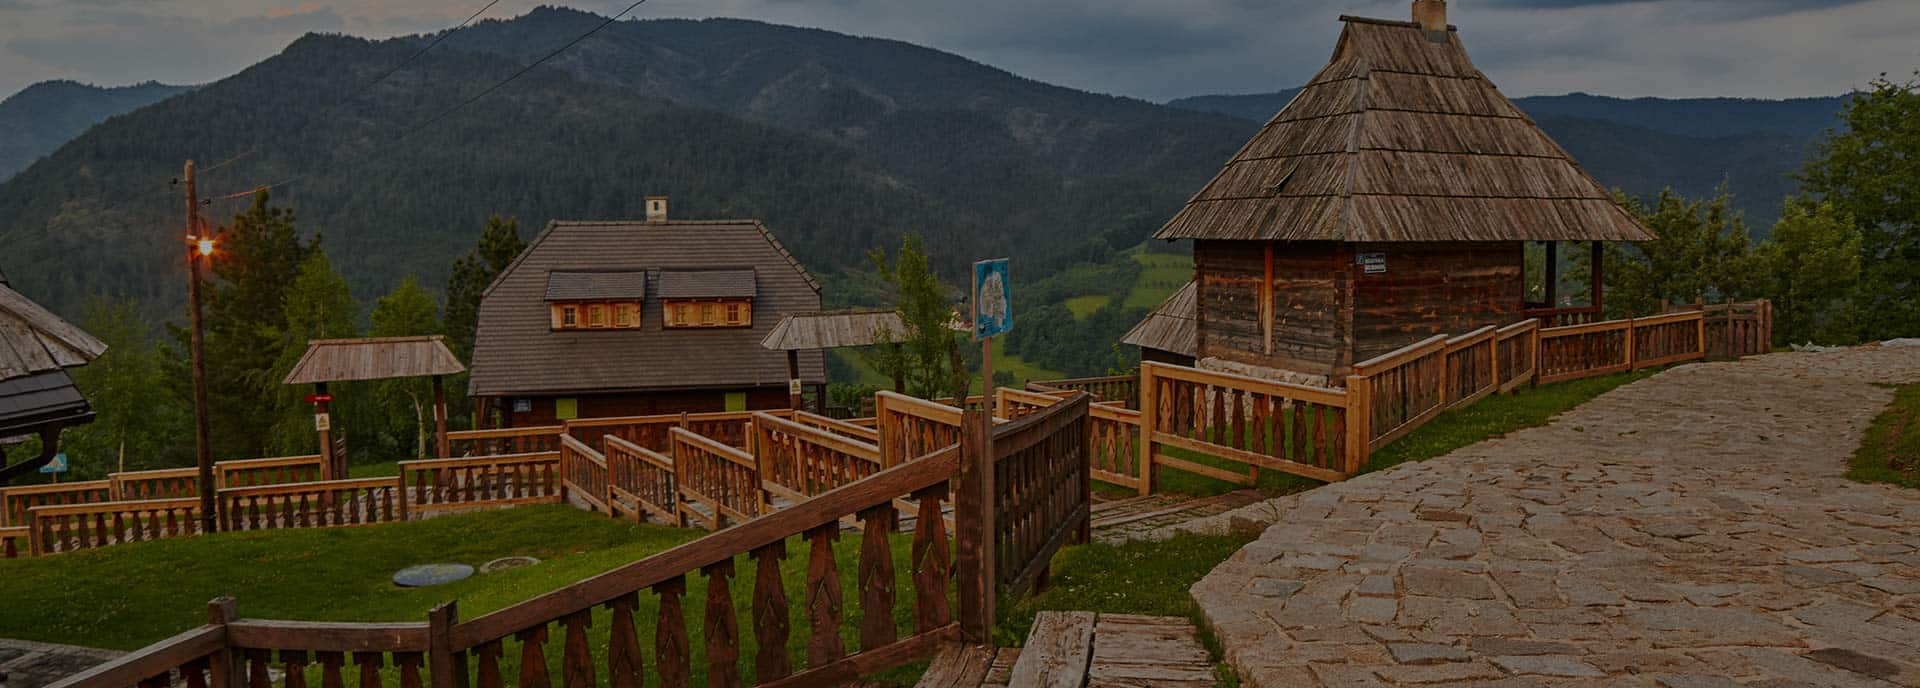 Mokra Gora - village in Serbia